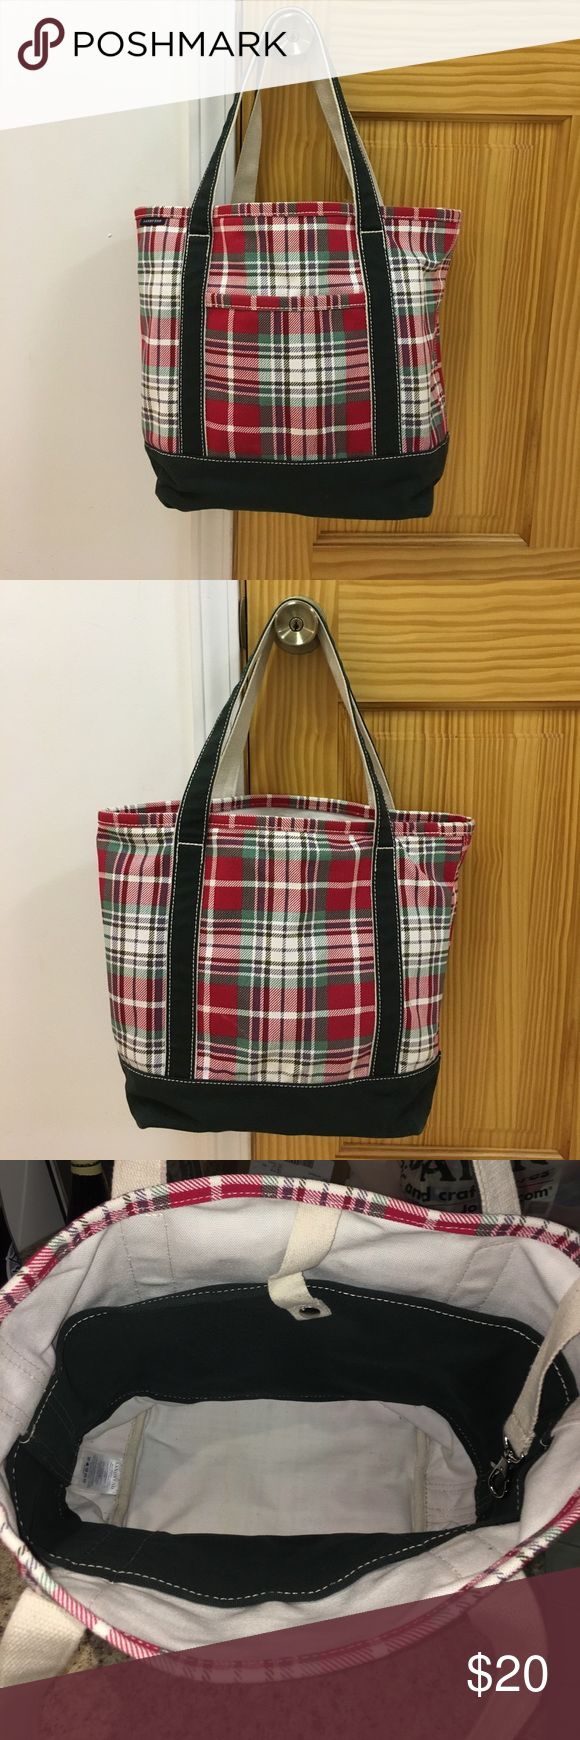 Land's End Tote Bag Bright red, green and white Land's End Tote in excellent condition. Perfect for a carry all or a work bag especially around Christmas. Used only a few times. No apparent wear. Smoke free home. No trades. Lands' End Bags Totes